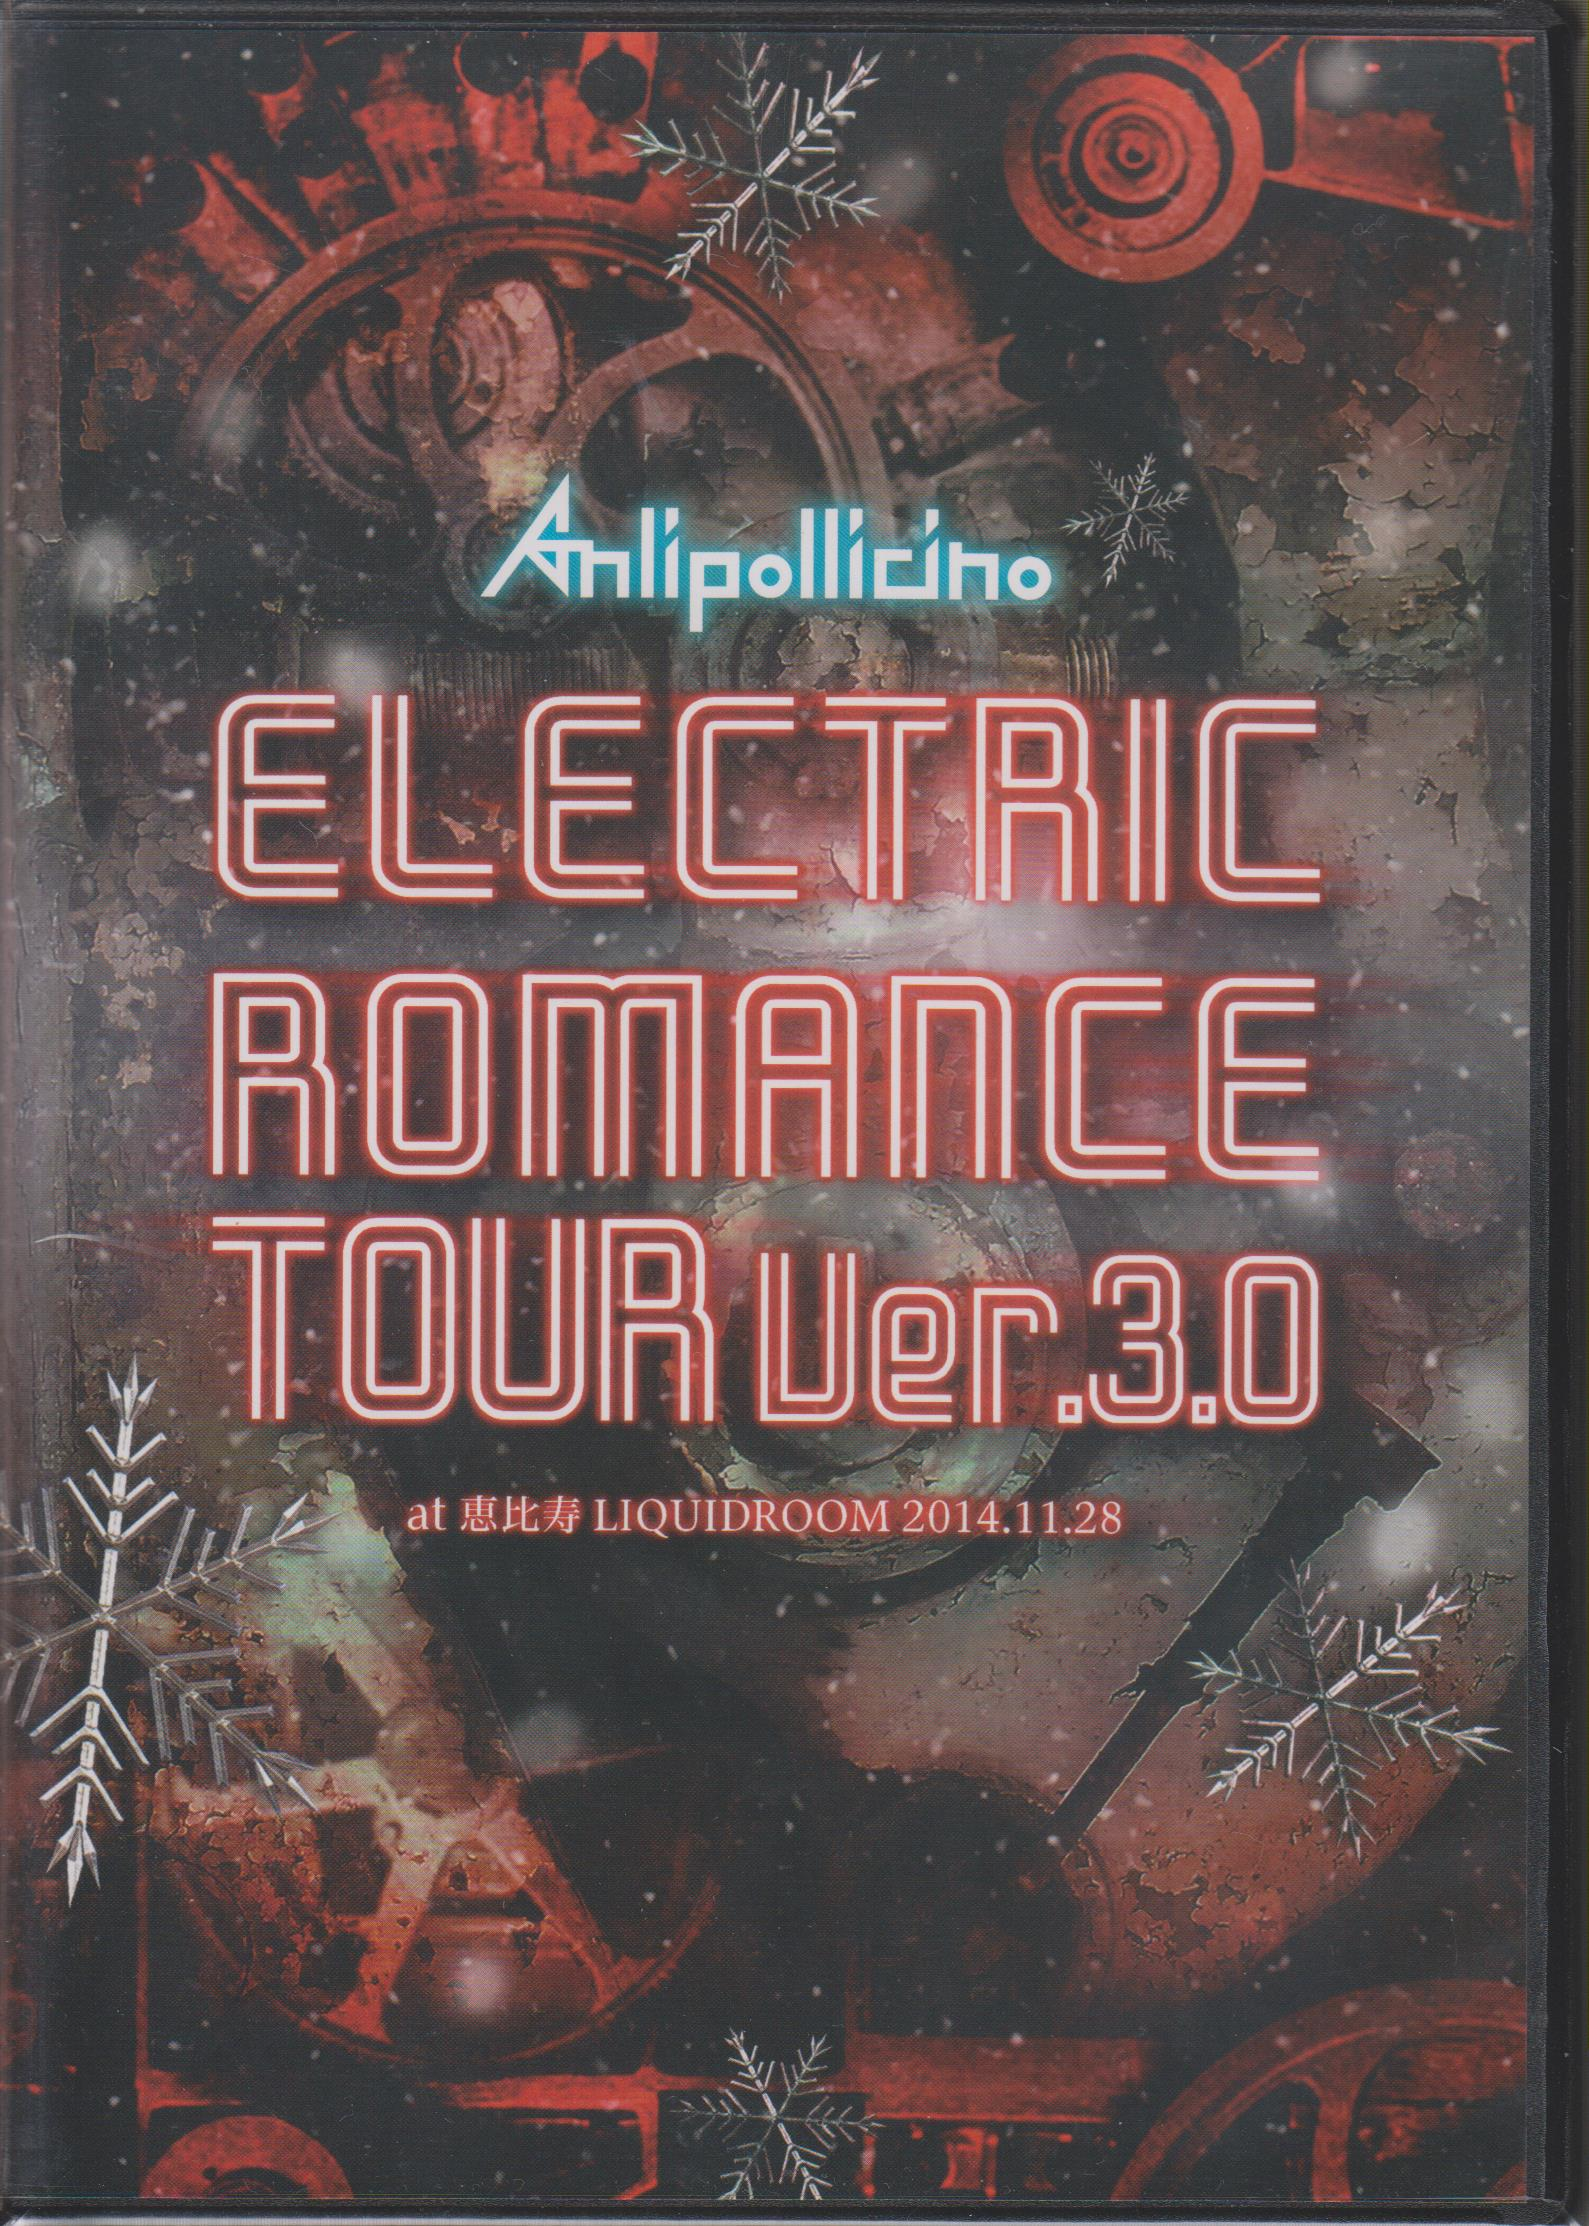 アンリポリチーノ の DVD ELECTRIC ROMANCE TOUR Ver.3.0 at 恵比寿 LIQUIDROOM 2014.11.28